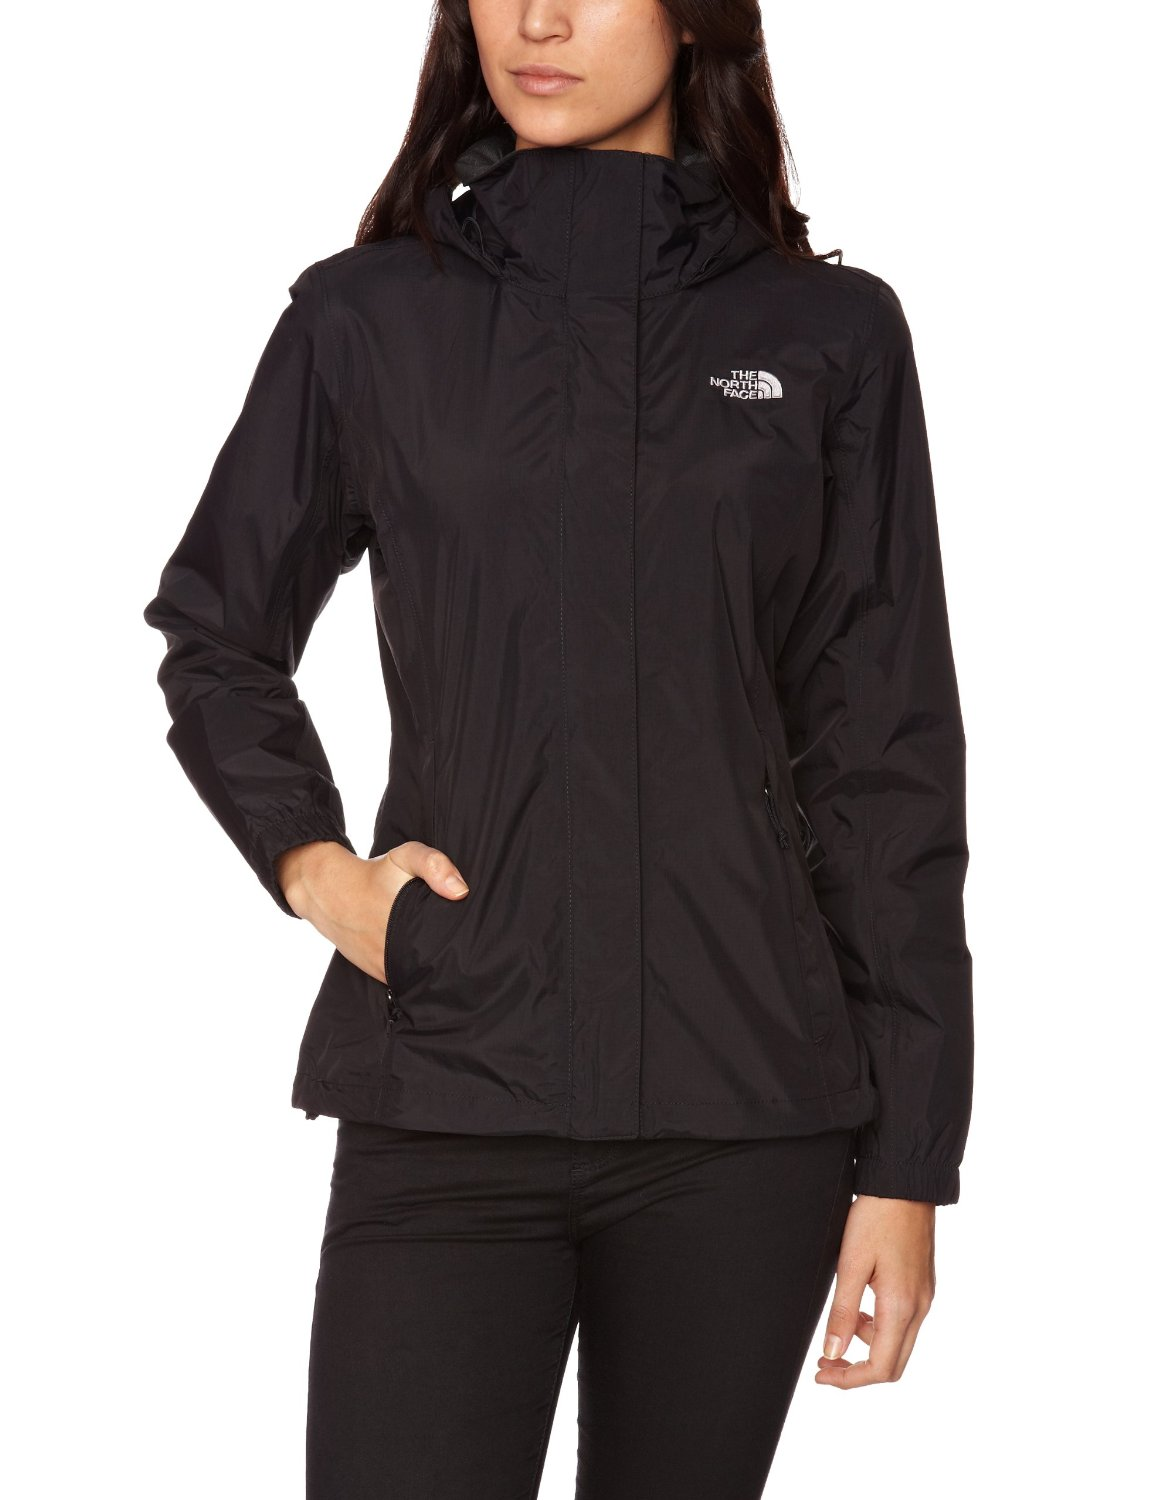 the-northface-damen_